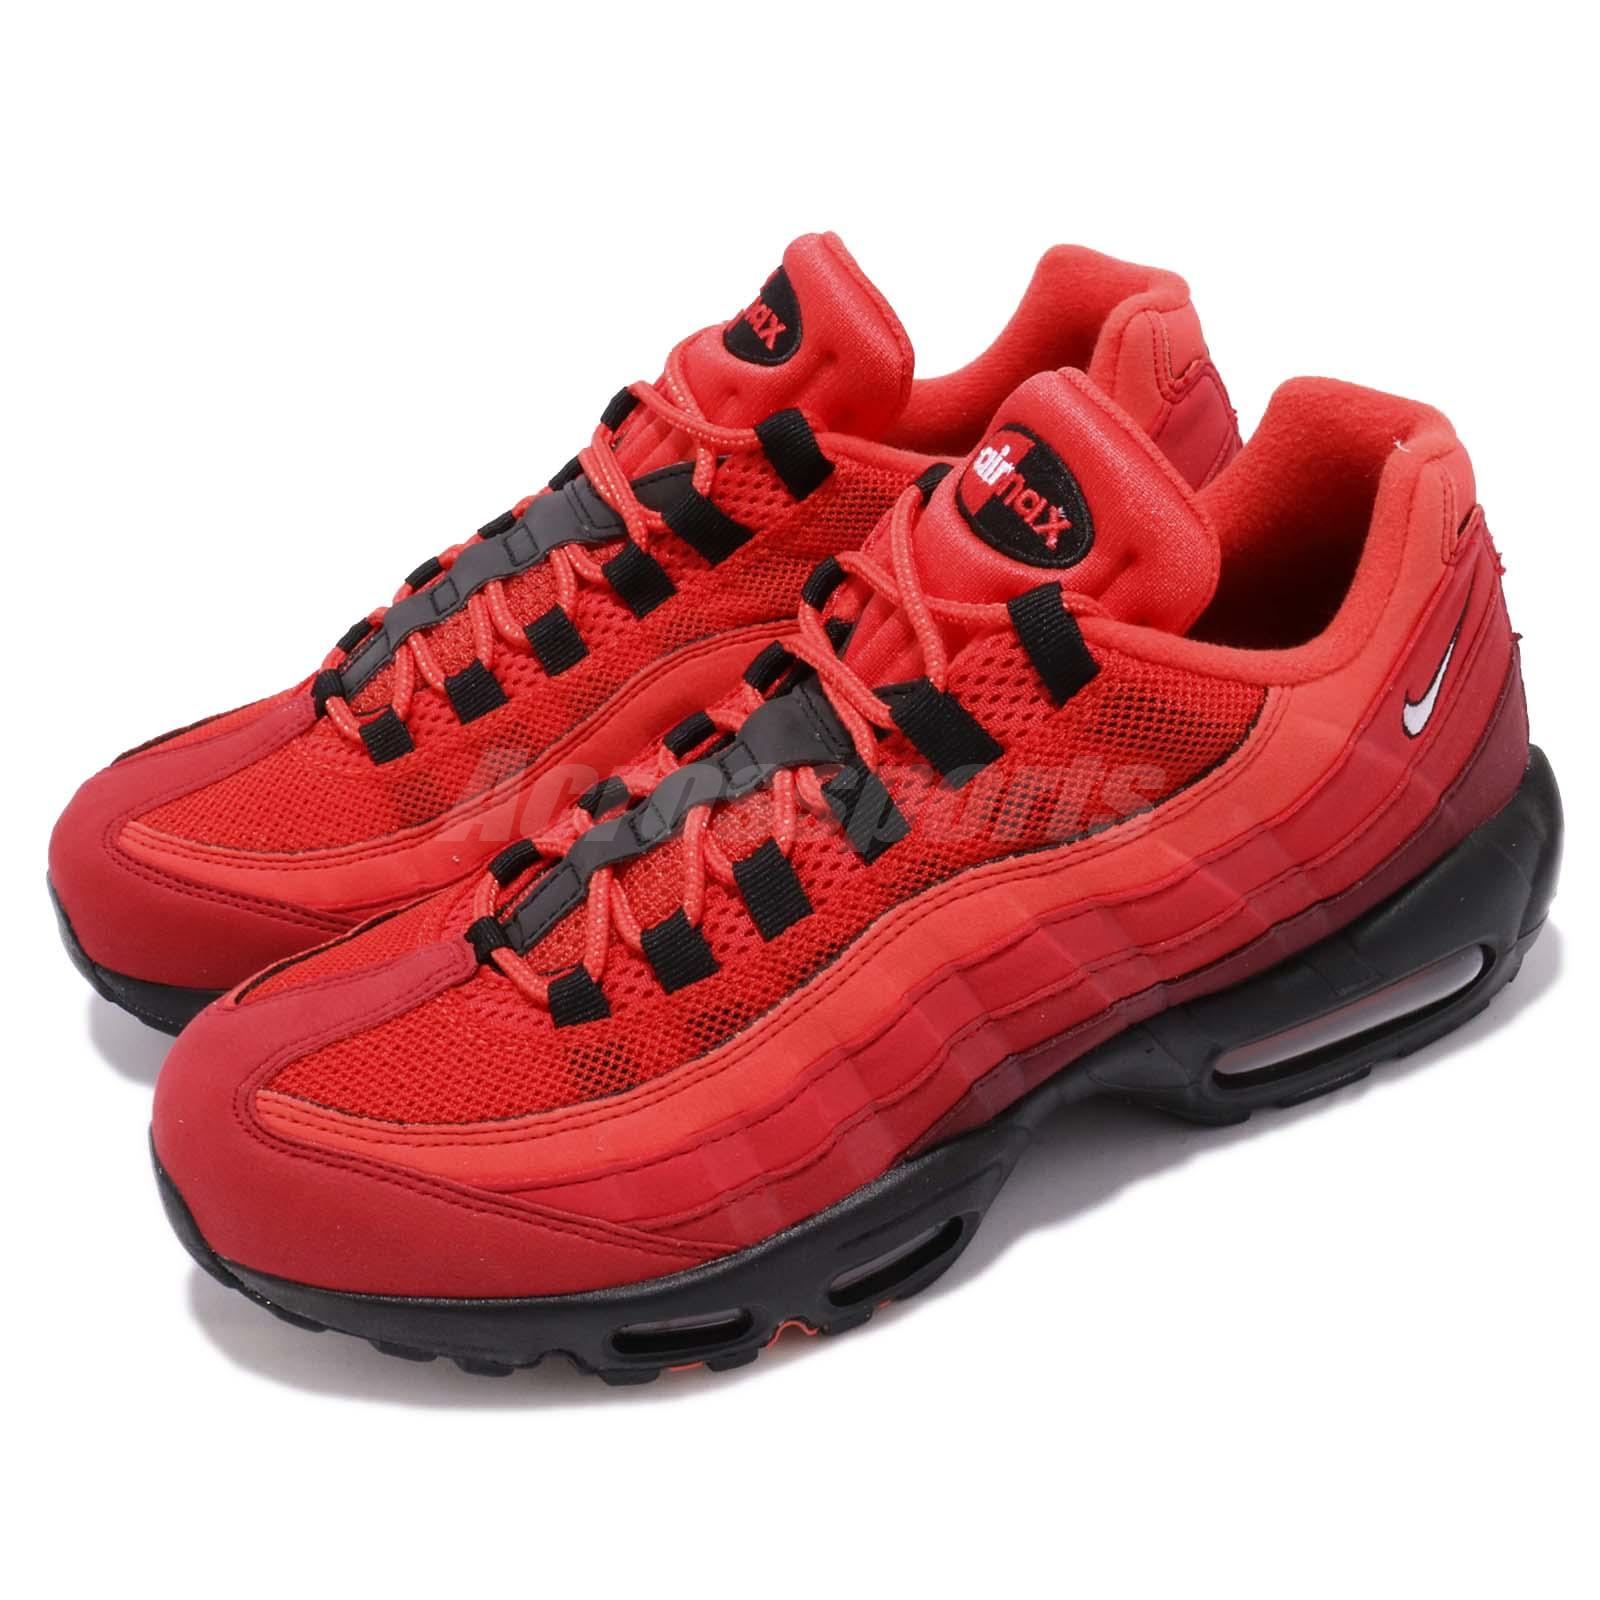 competitive price 648fe fdc24 Details about Nike Air Max 95 OG Habanero Red Men Running Lifestyle Shoes  Sneakers AT2865-600